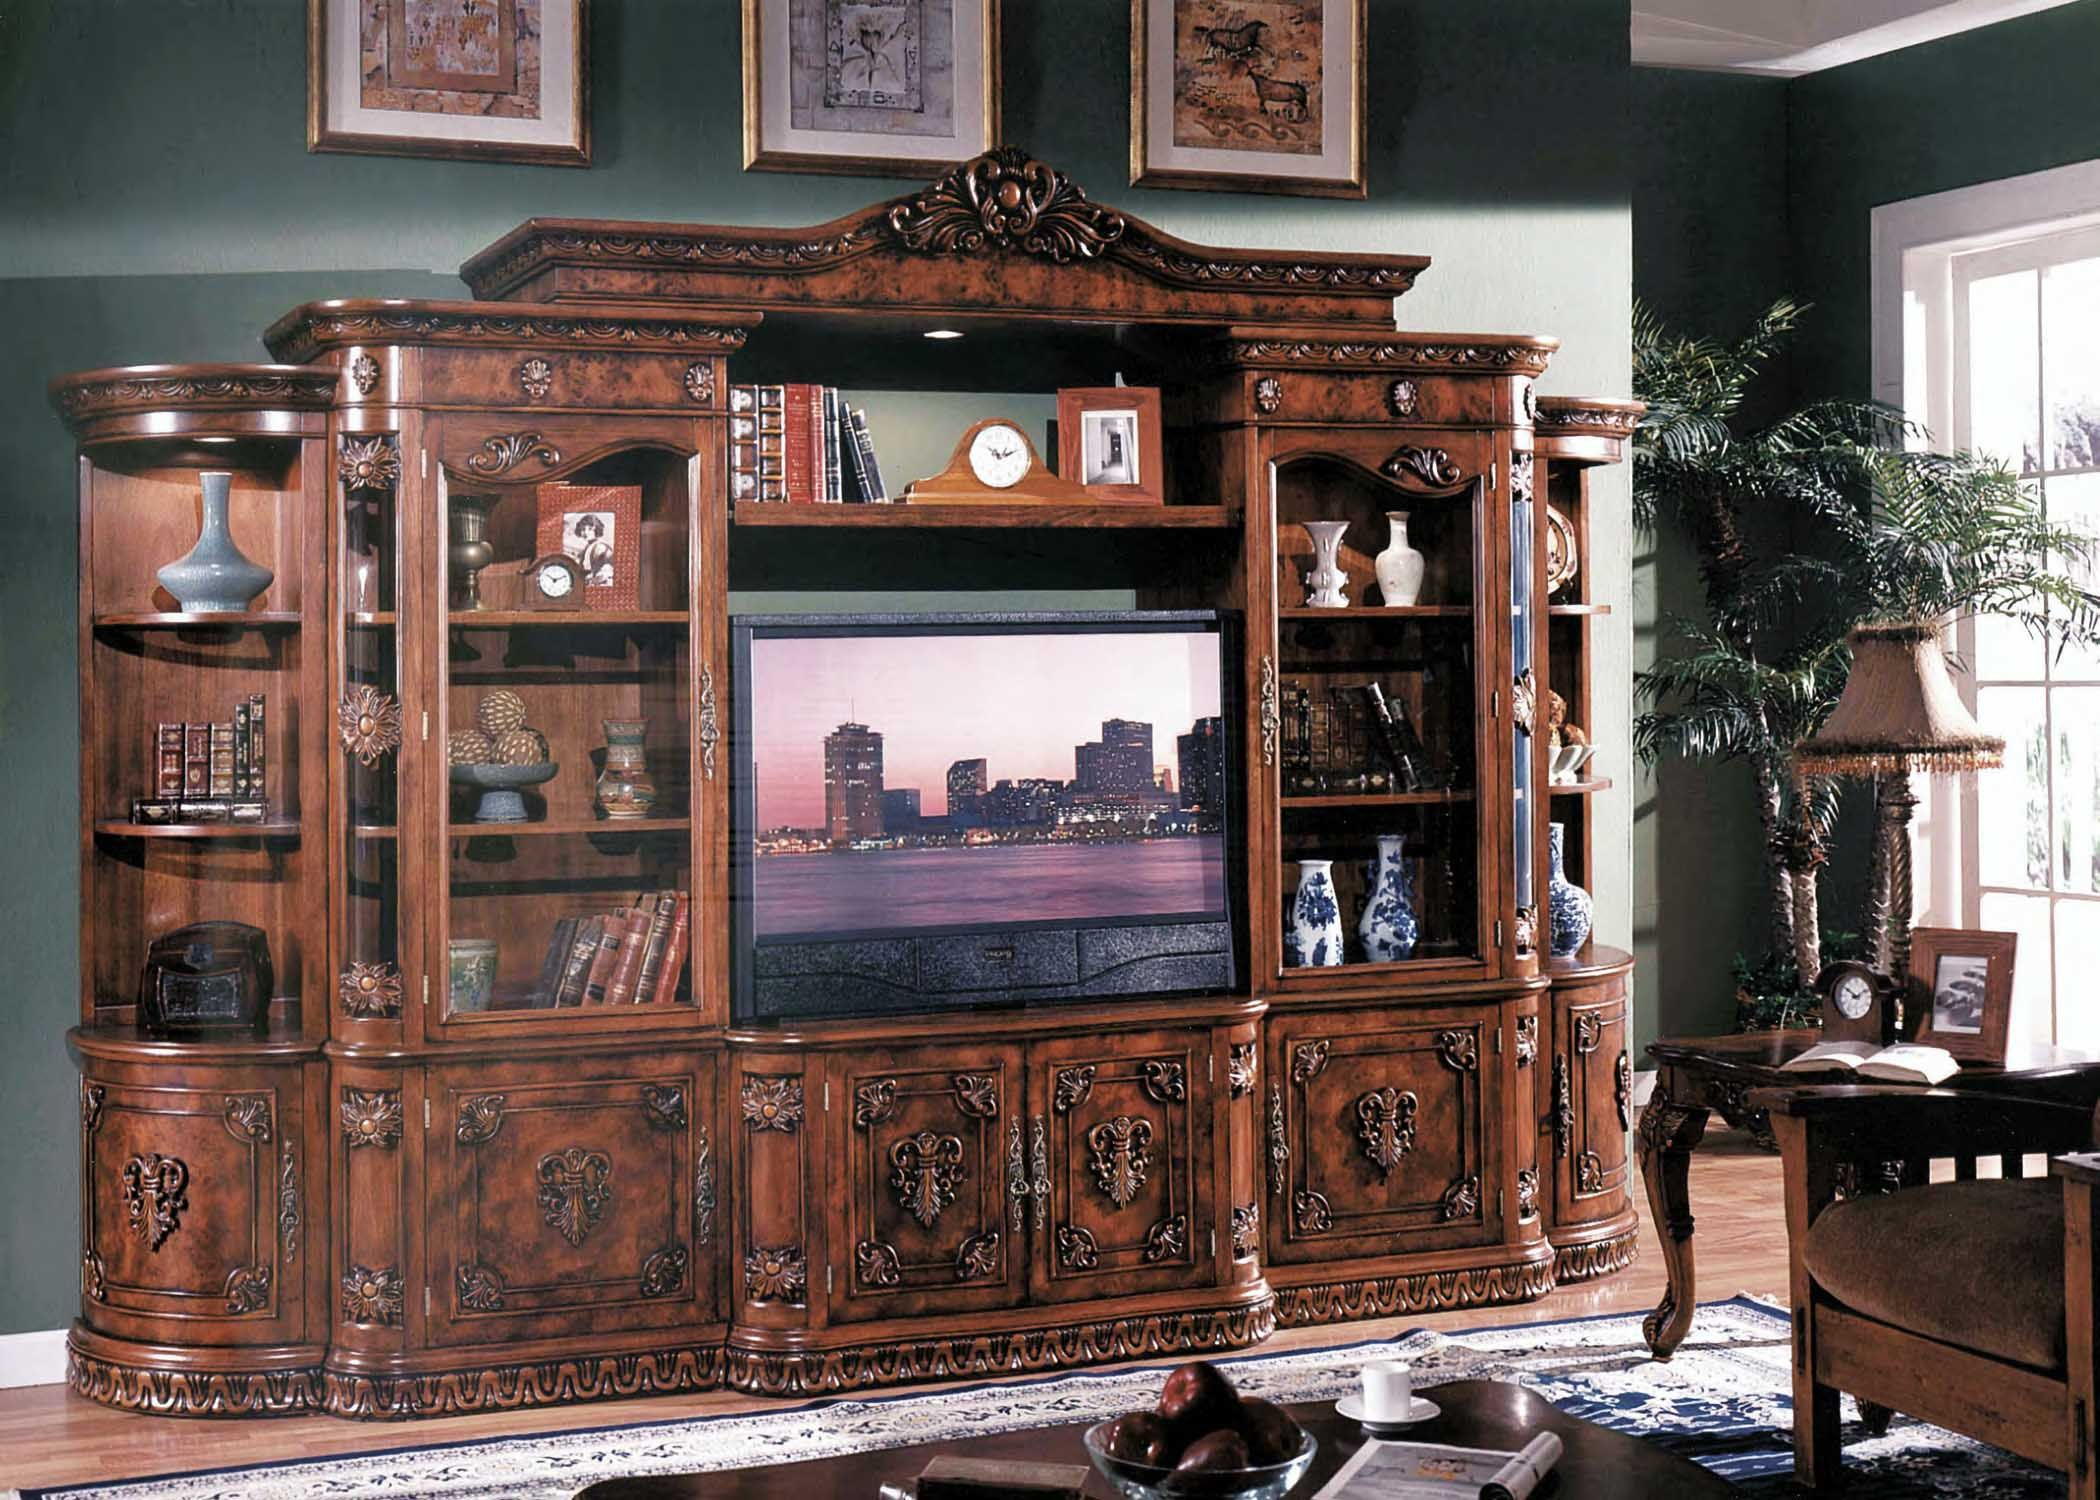 Awesome Antique Entertainment Centers For Flat Screen Tvs With Cly Cherry Ash Burl Finish Design